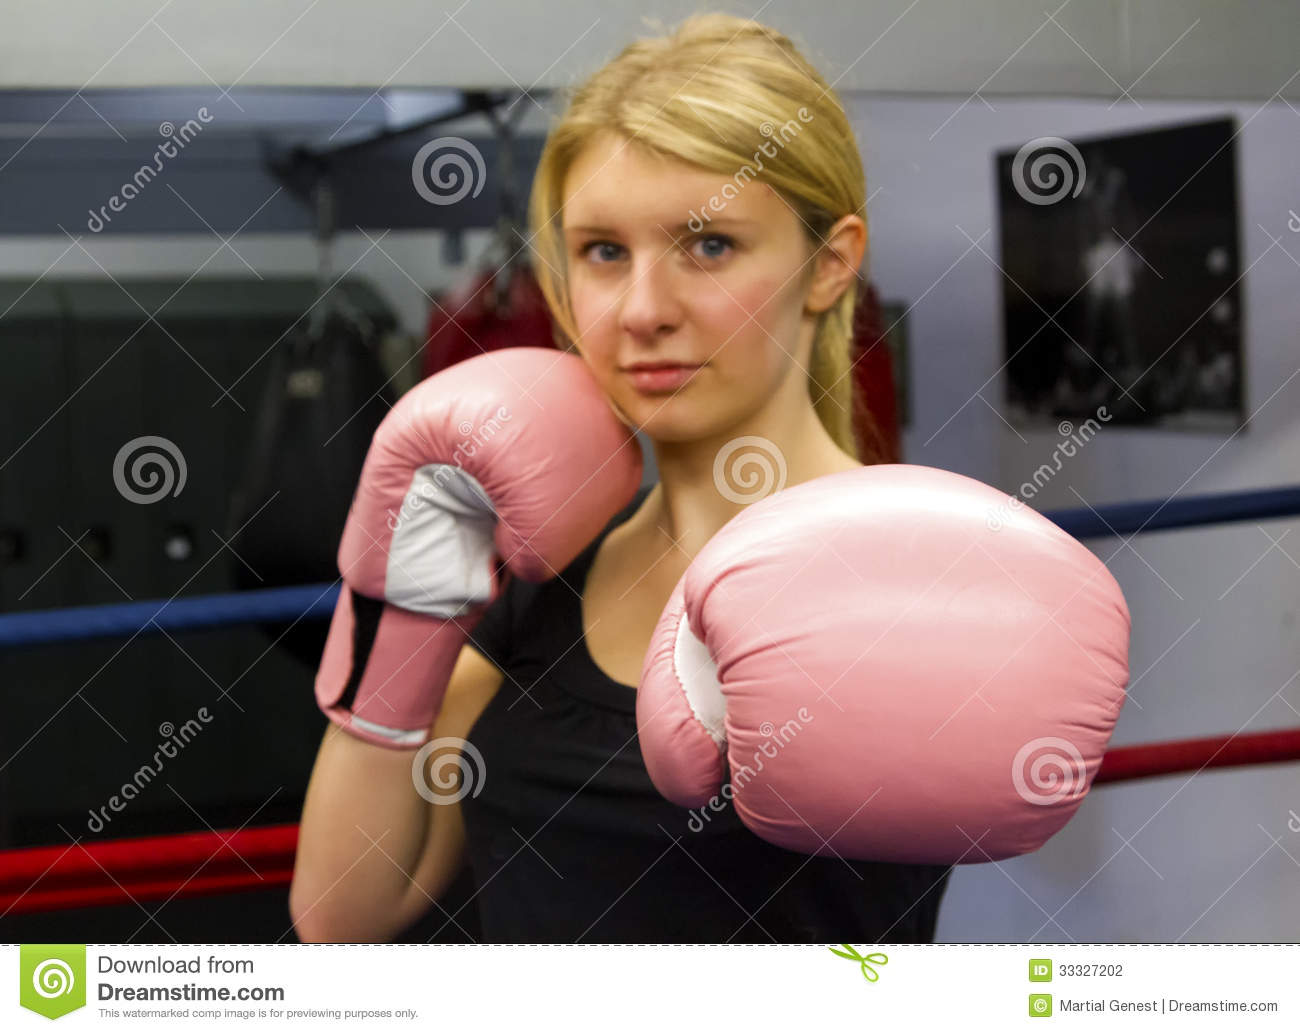 how to avoid punches in boxing